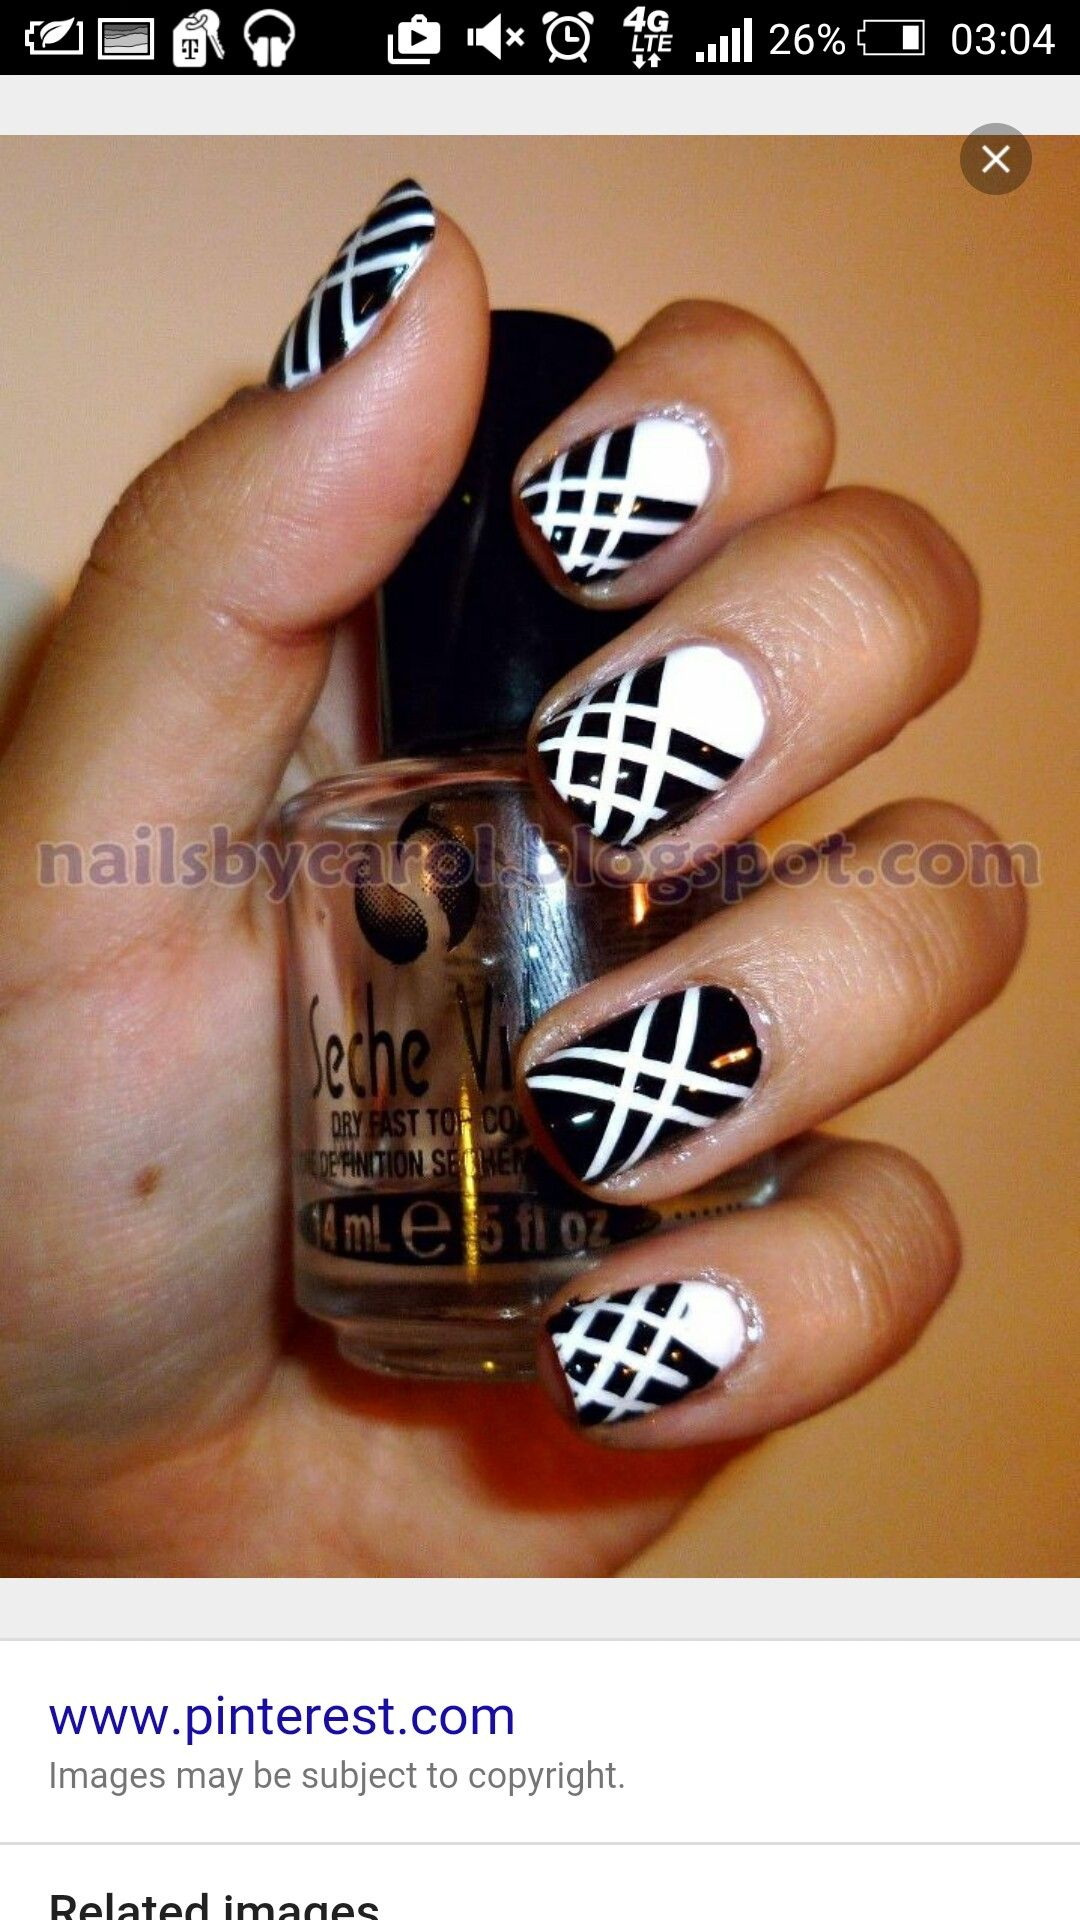 Pin By Sheri Garvey On Projects To Try Pinterest Cross Nails